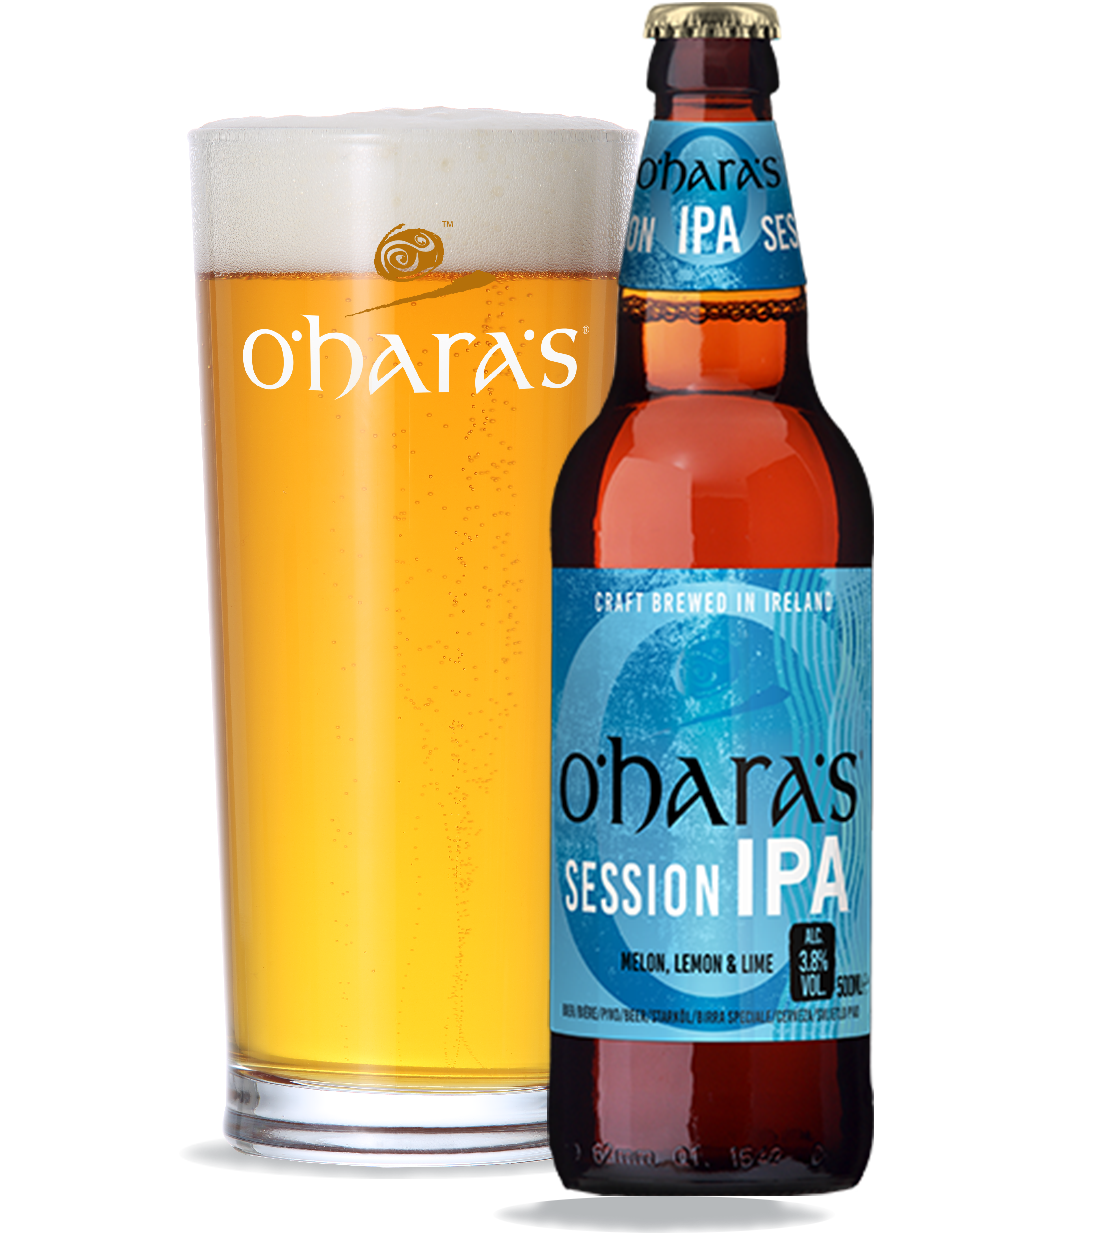 oharas-session-ipa-for-beer-page-bottle